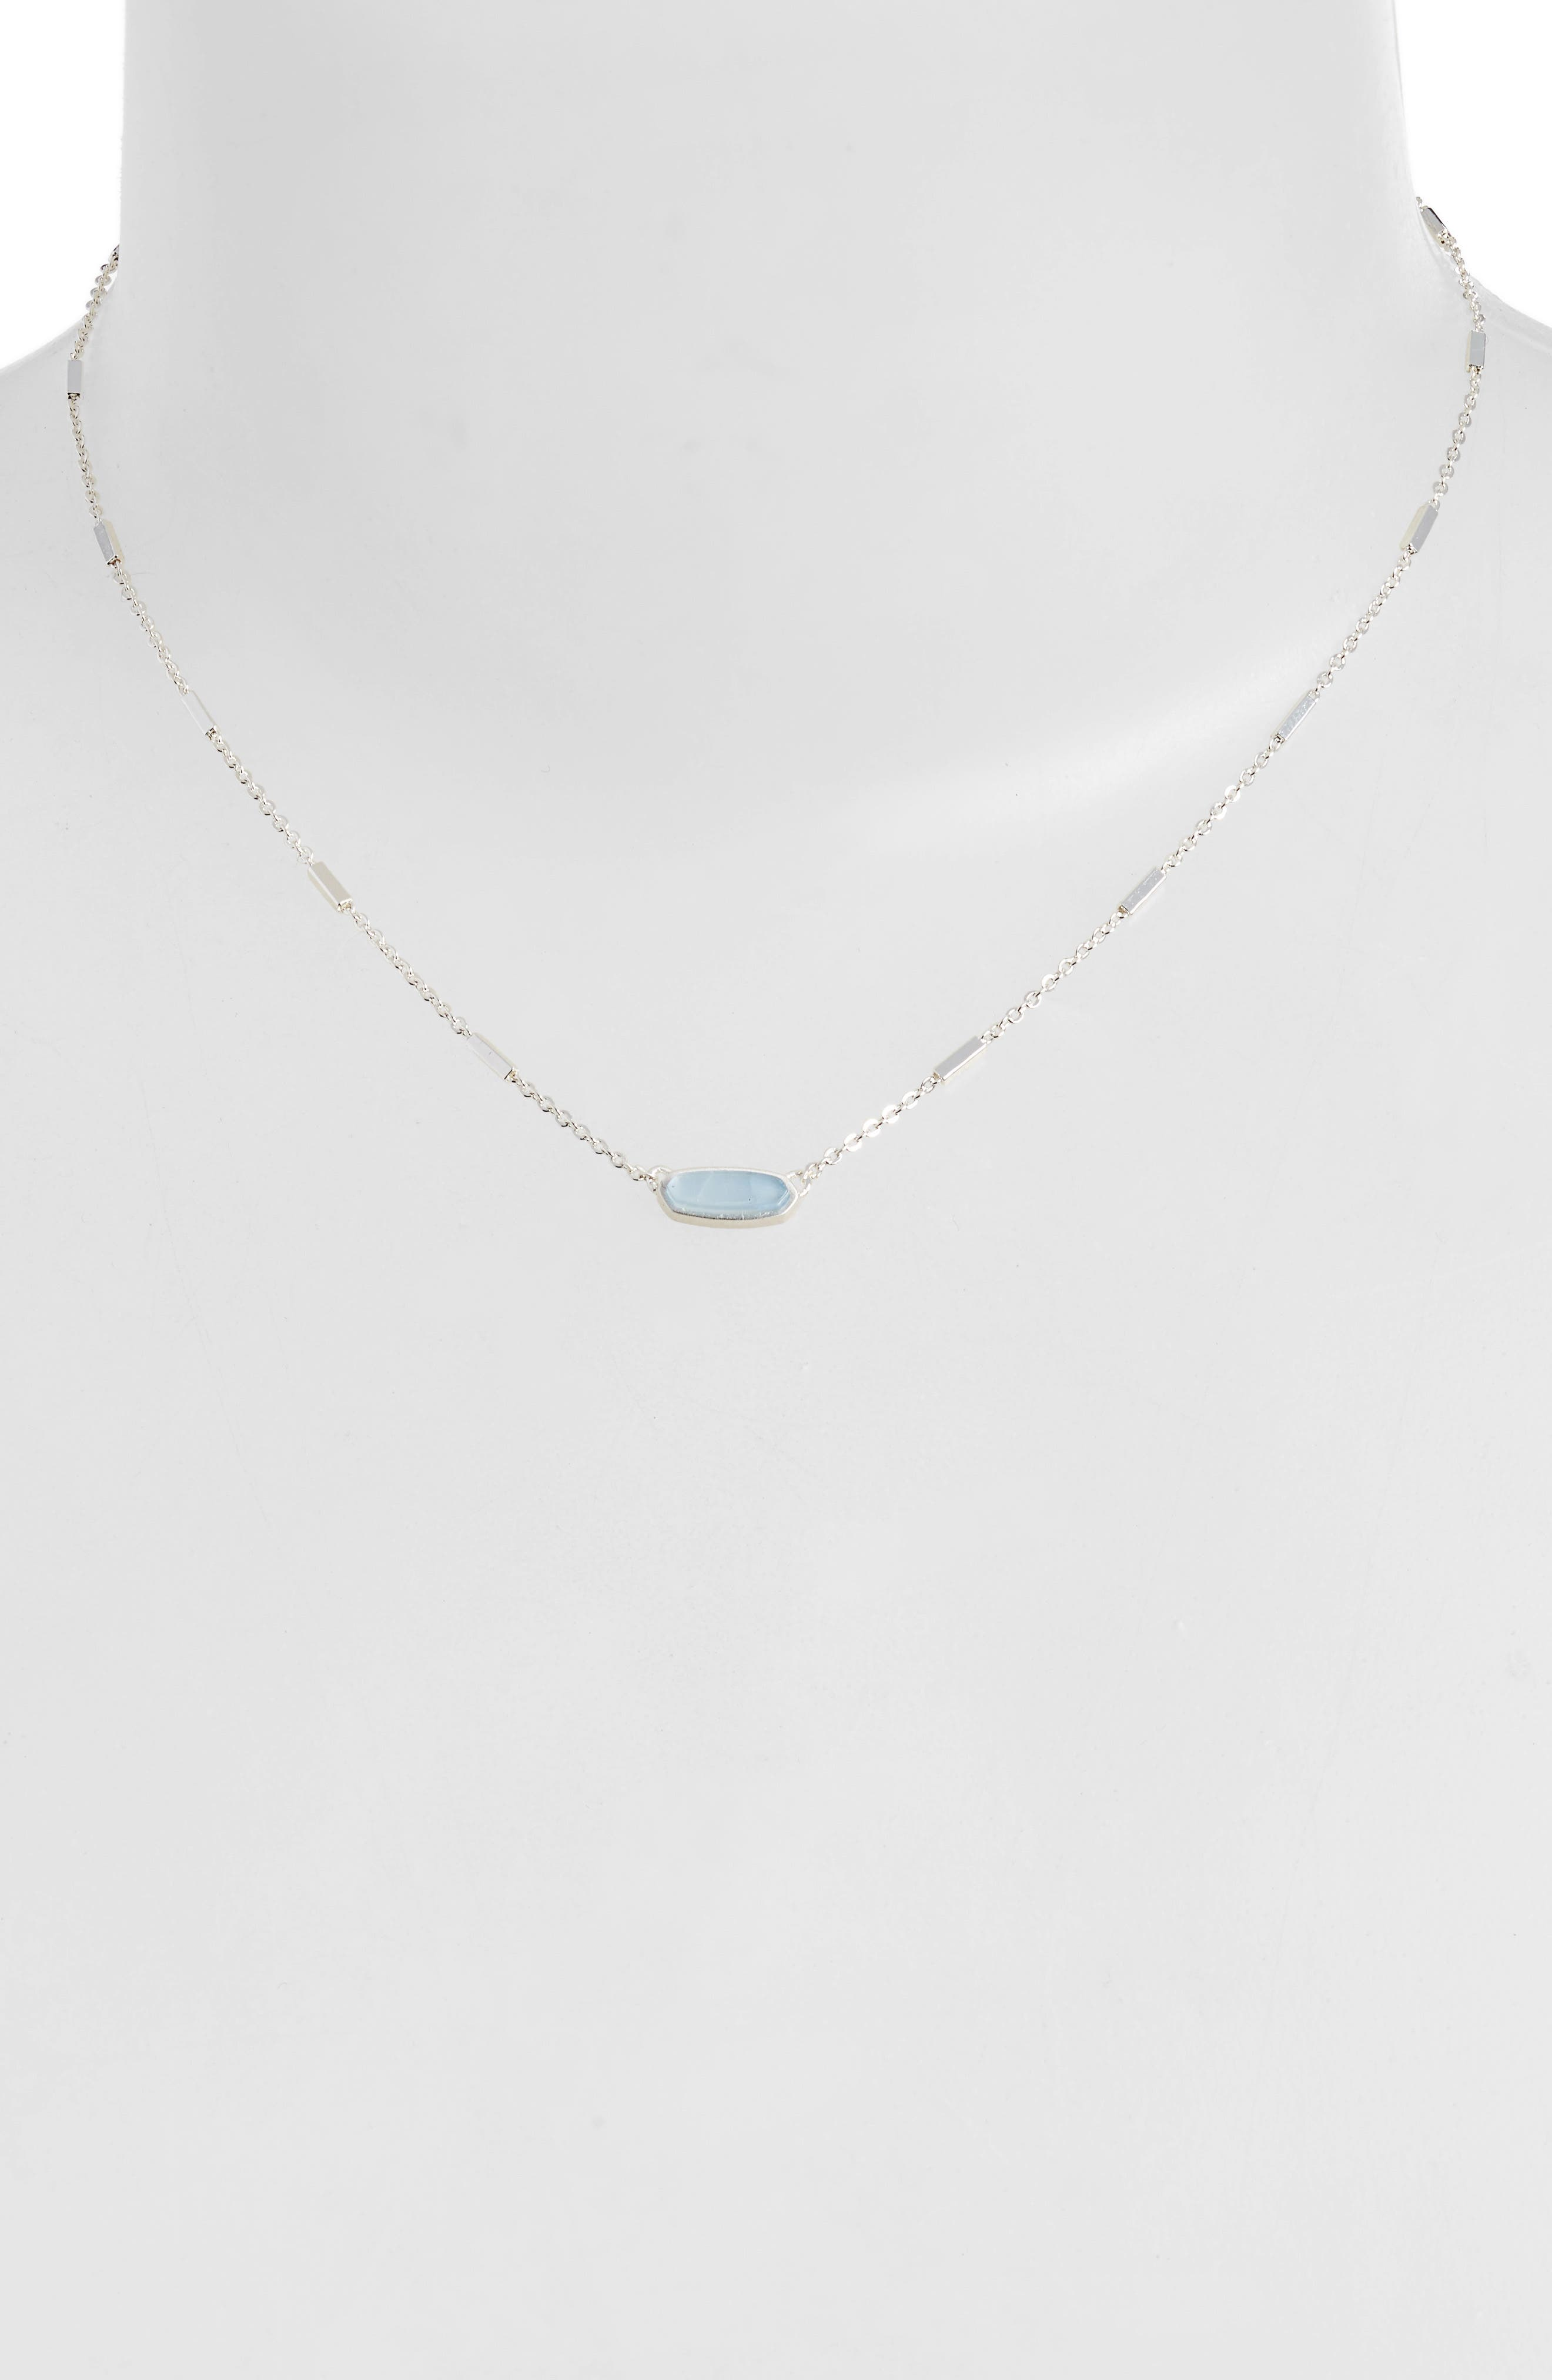 KENDRA SCOTT Miya East/West Pendant Necklace, Main, color, 400